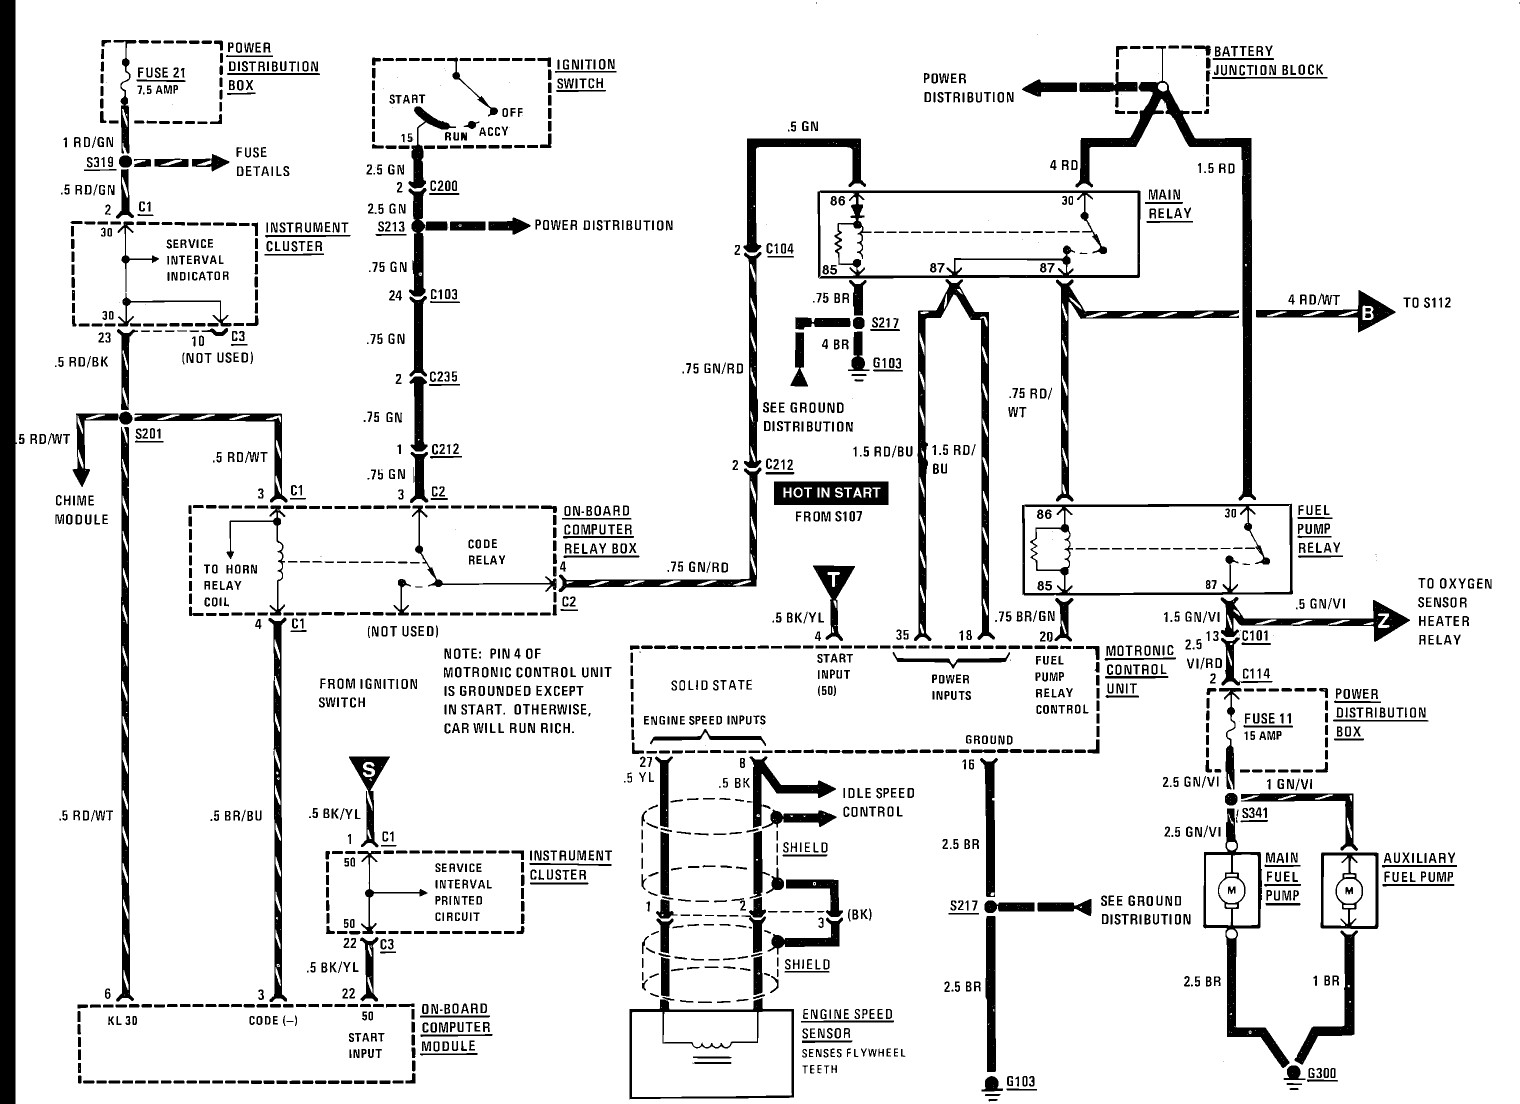 hight resolution of bmw 745i wiring diagram wiring diagrams konsult bmw 745i wiring diagrams wiring diagrams wni bmw 745i